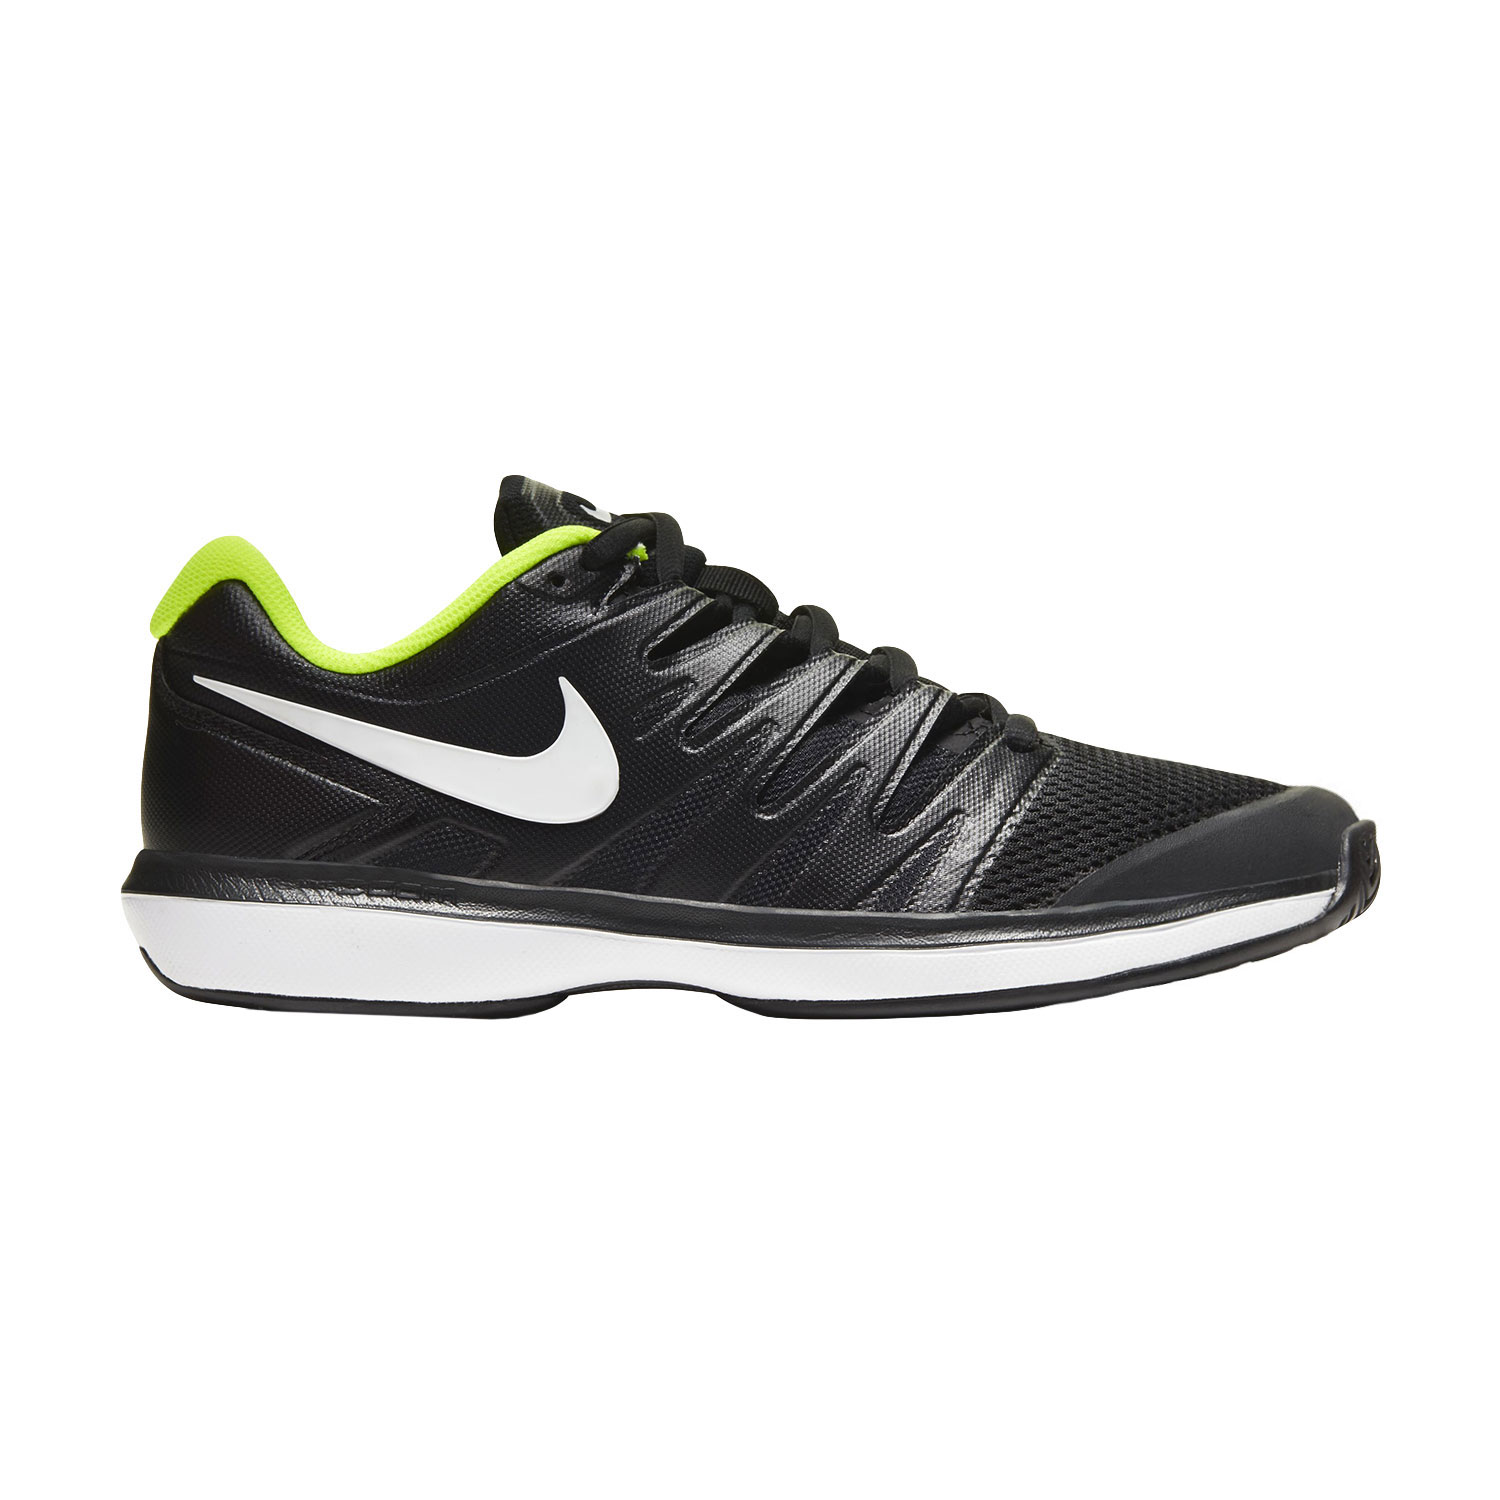 buy popular pretty nice new images of Nike Zoom Prestige Clay Men's Tennis Shoes - Black/White